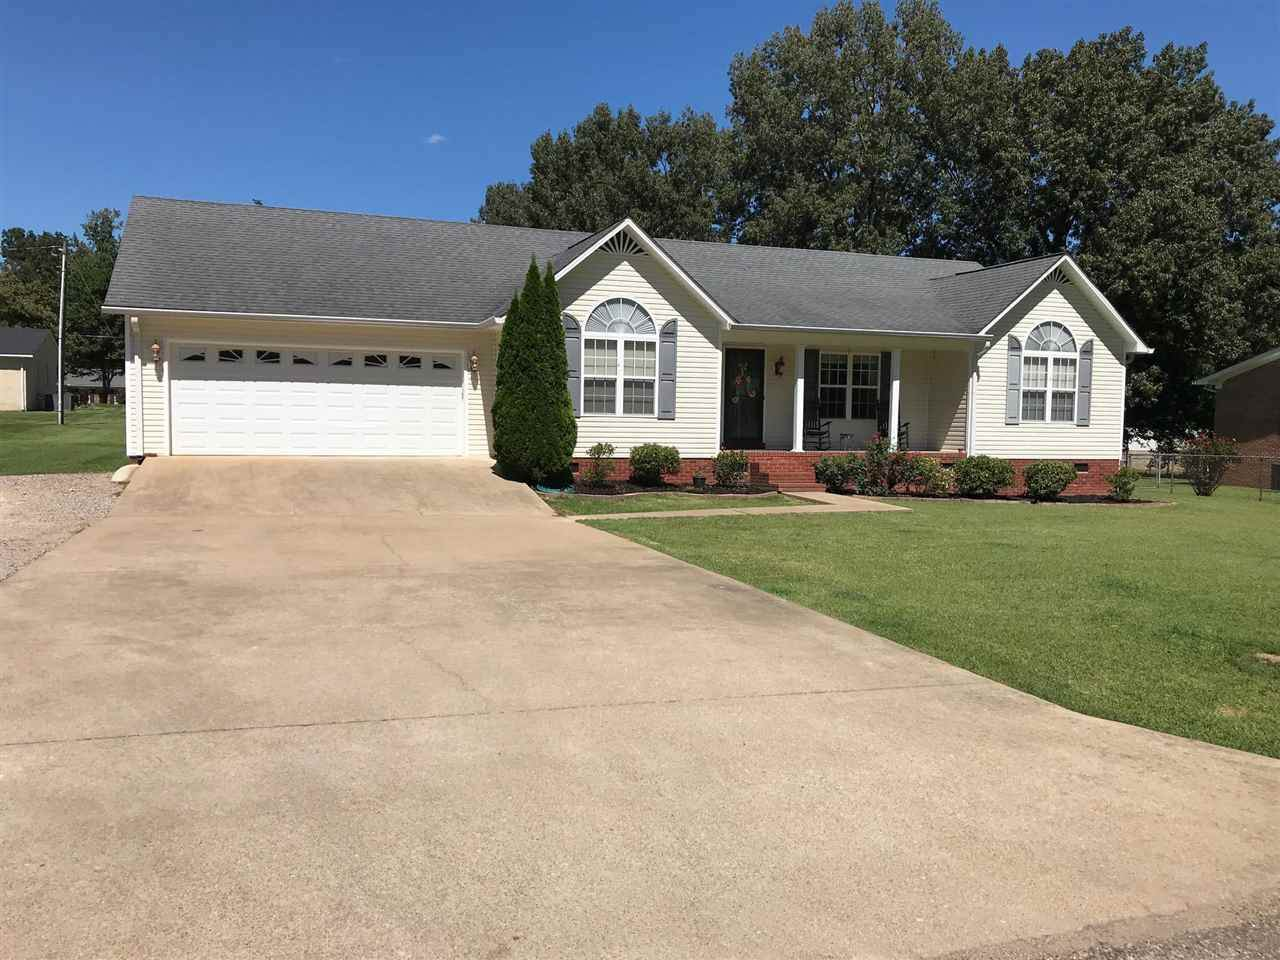 485 Bounce Dr - Photo 1